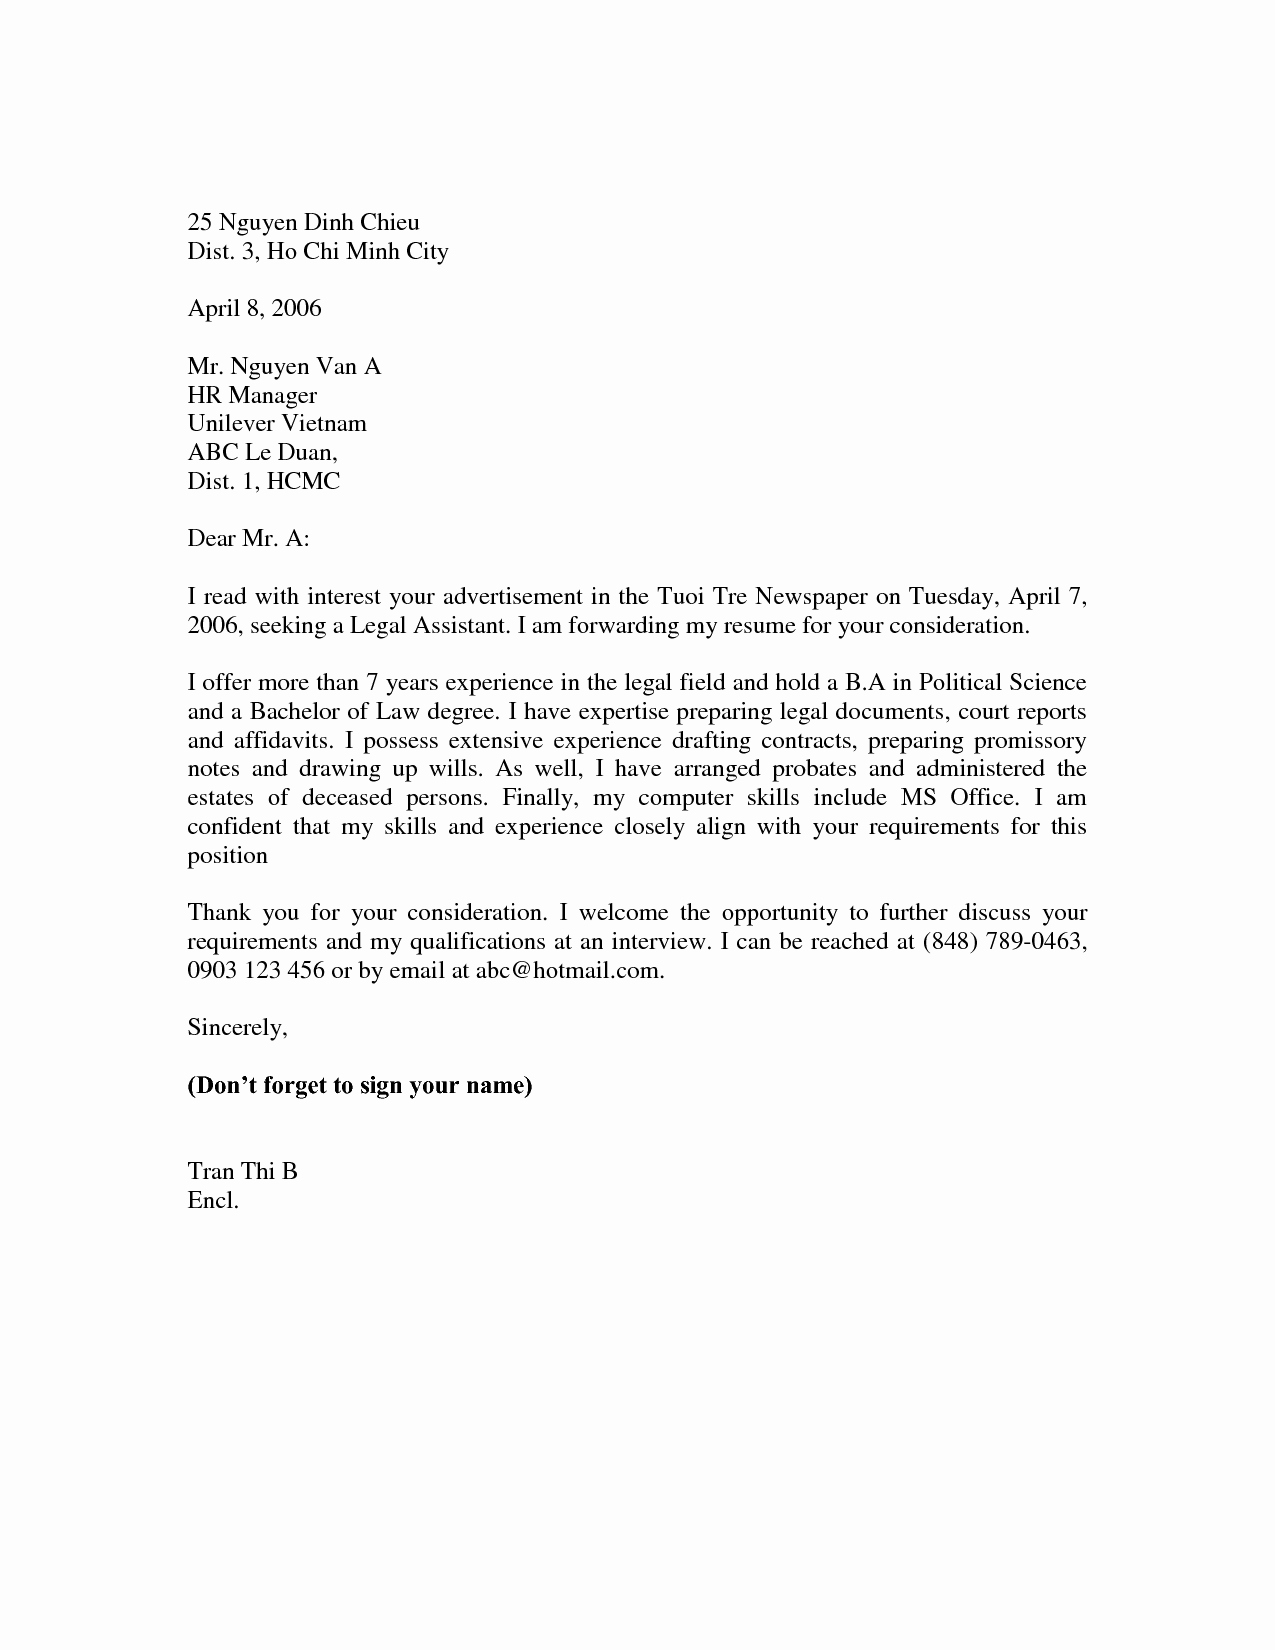 Resume and Cover Letter Templates Awesome Basic Cover Letter for Resume Examples